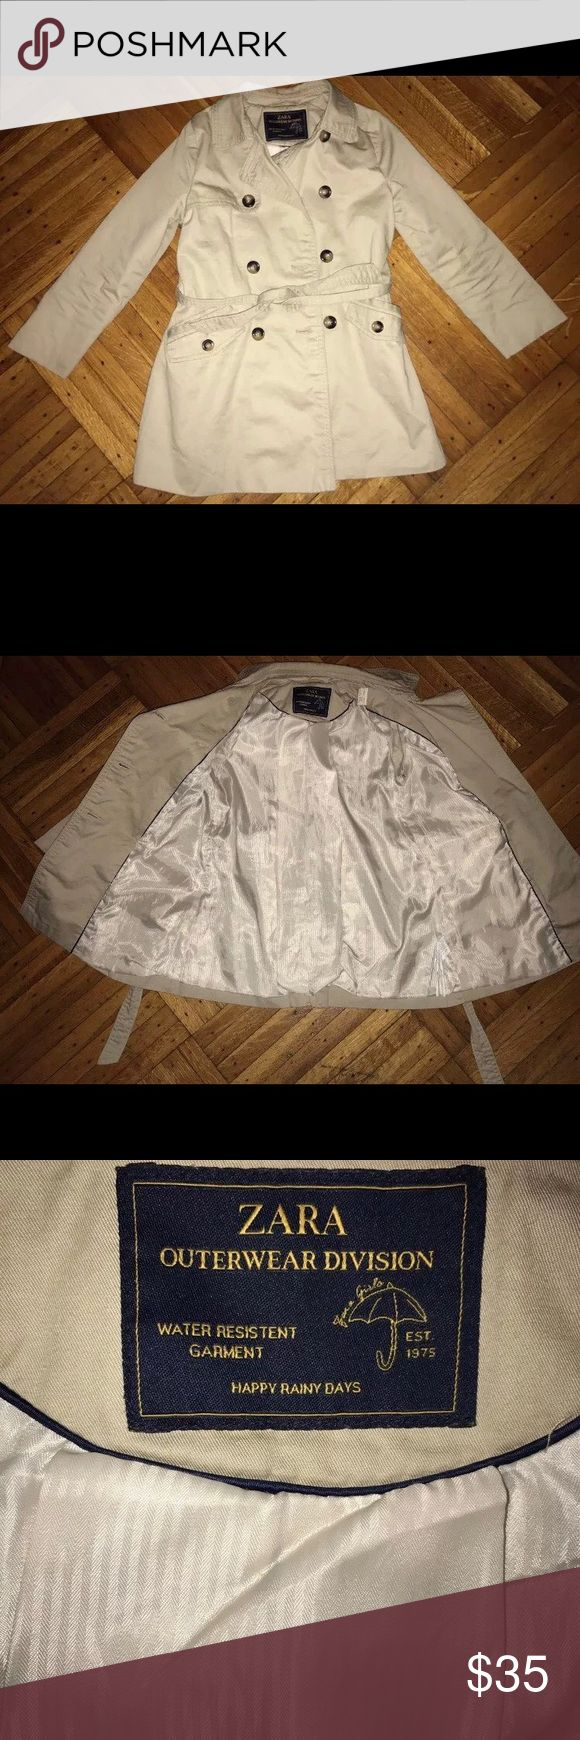 Zara Girls Trench Coat Size 7yrs! Zara Girls Trench Coat Size 7. Beige color. WATER RESISTANT ! It's exactly as seen in the photos I've provided. Great Condition! Zara Jackets & Coats